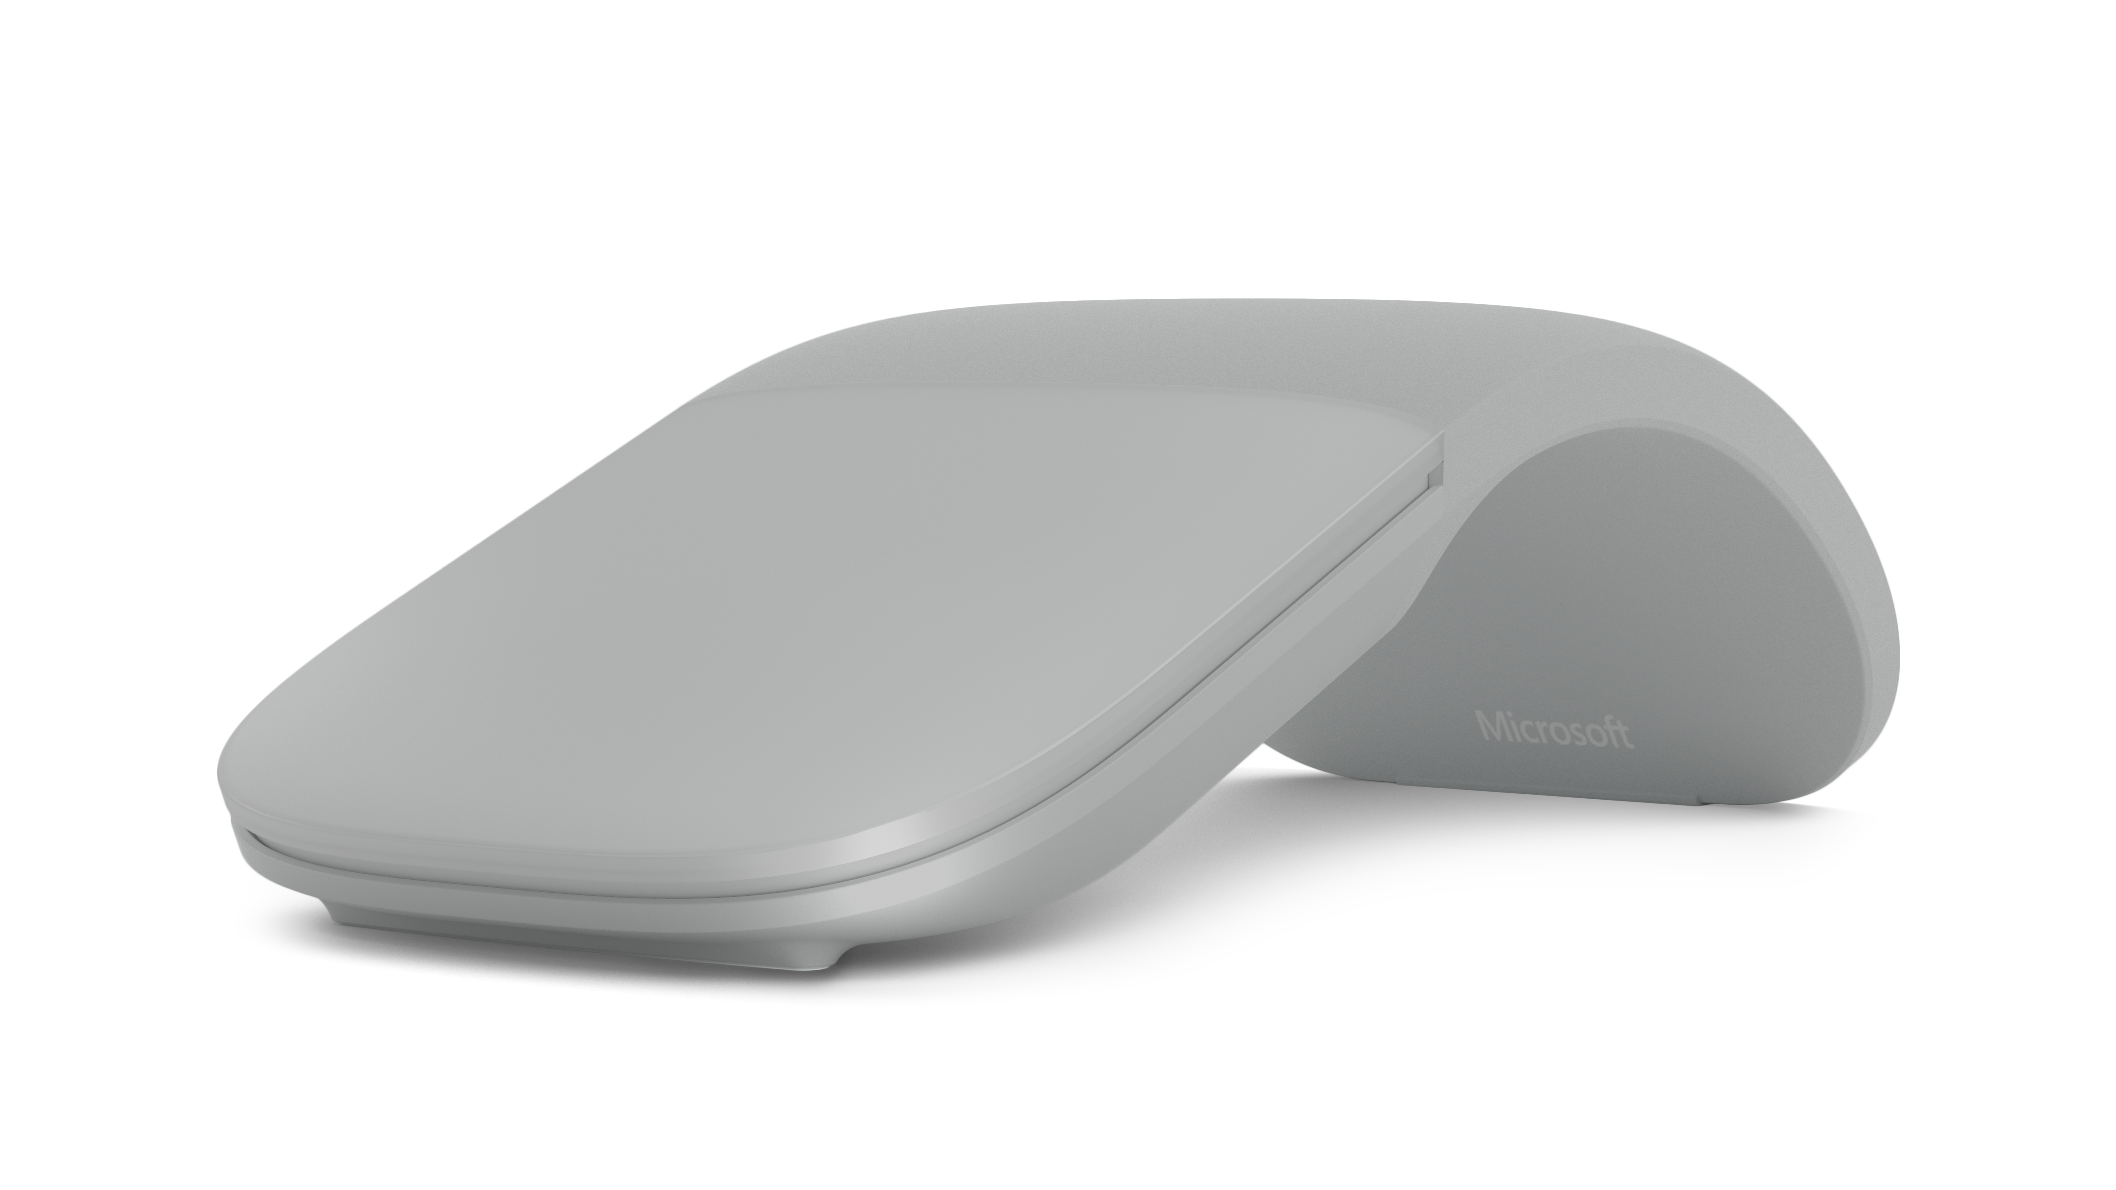 Surface Arc Mouse (グレー)